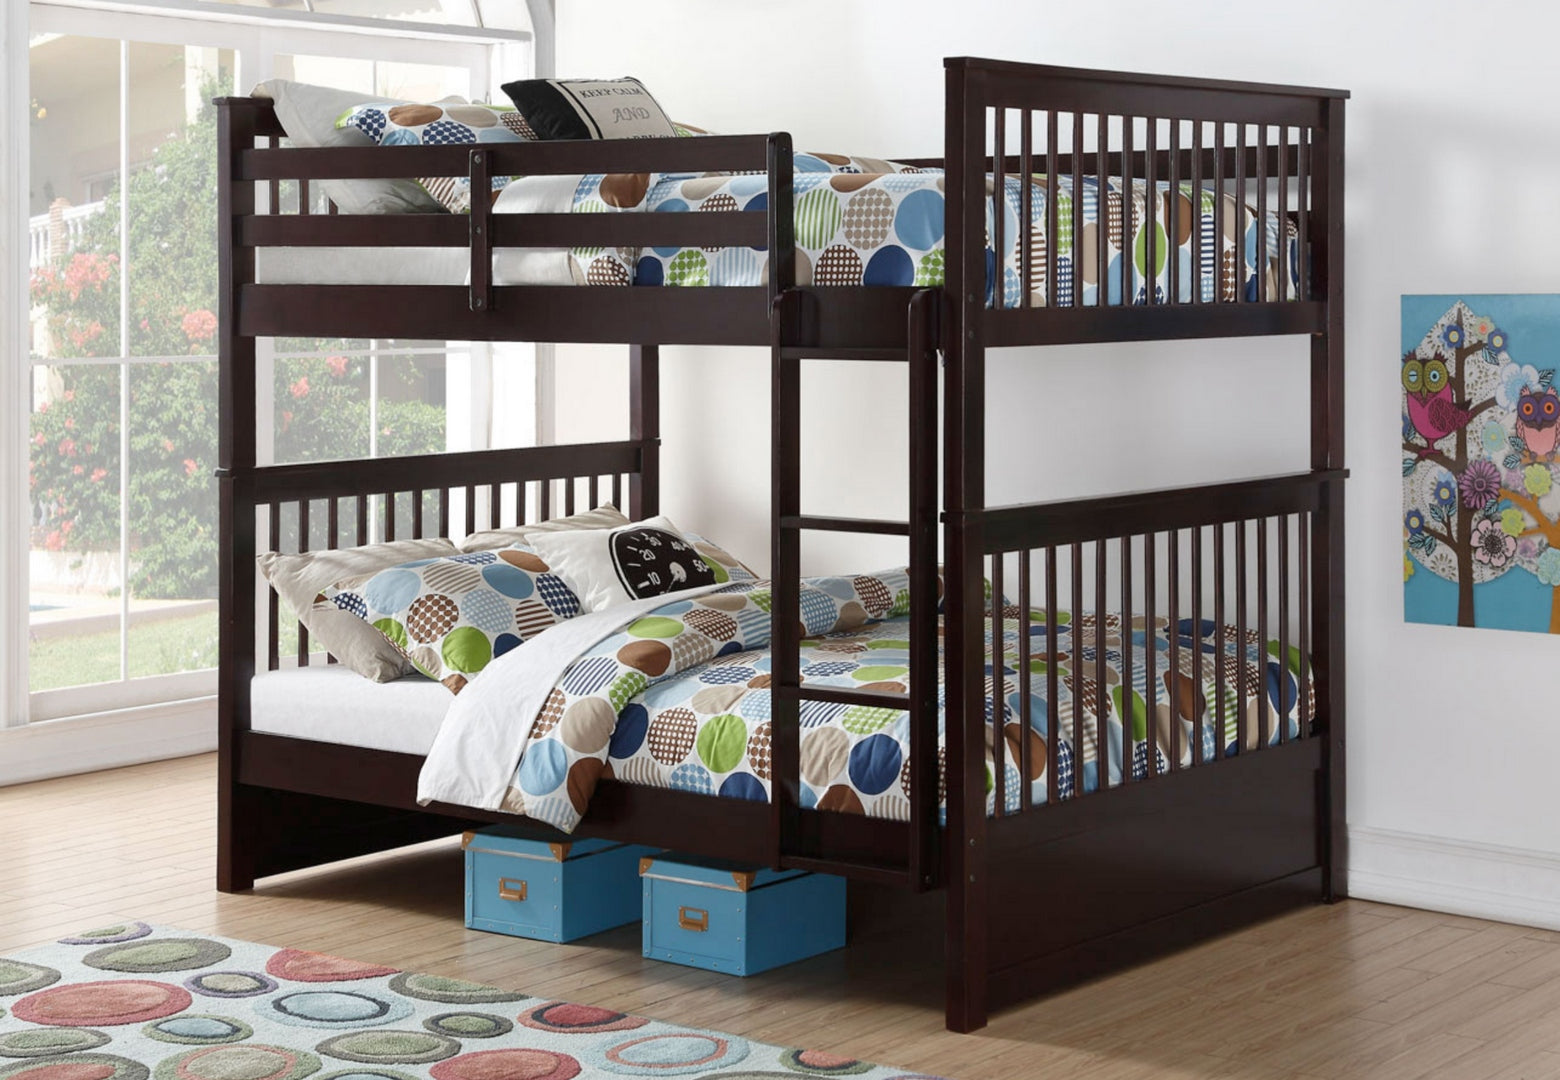 123 BUNK BED Mission Full/Full Mission